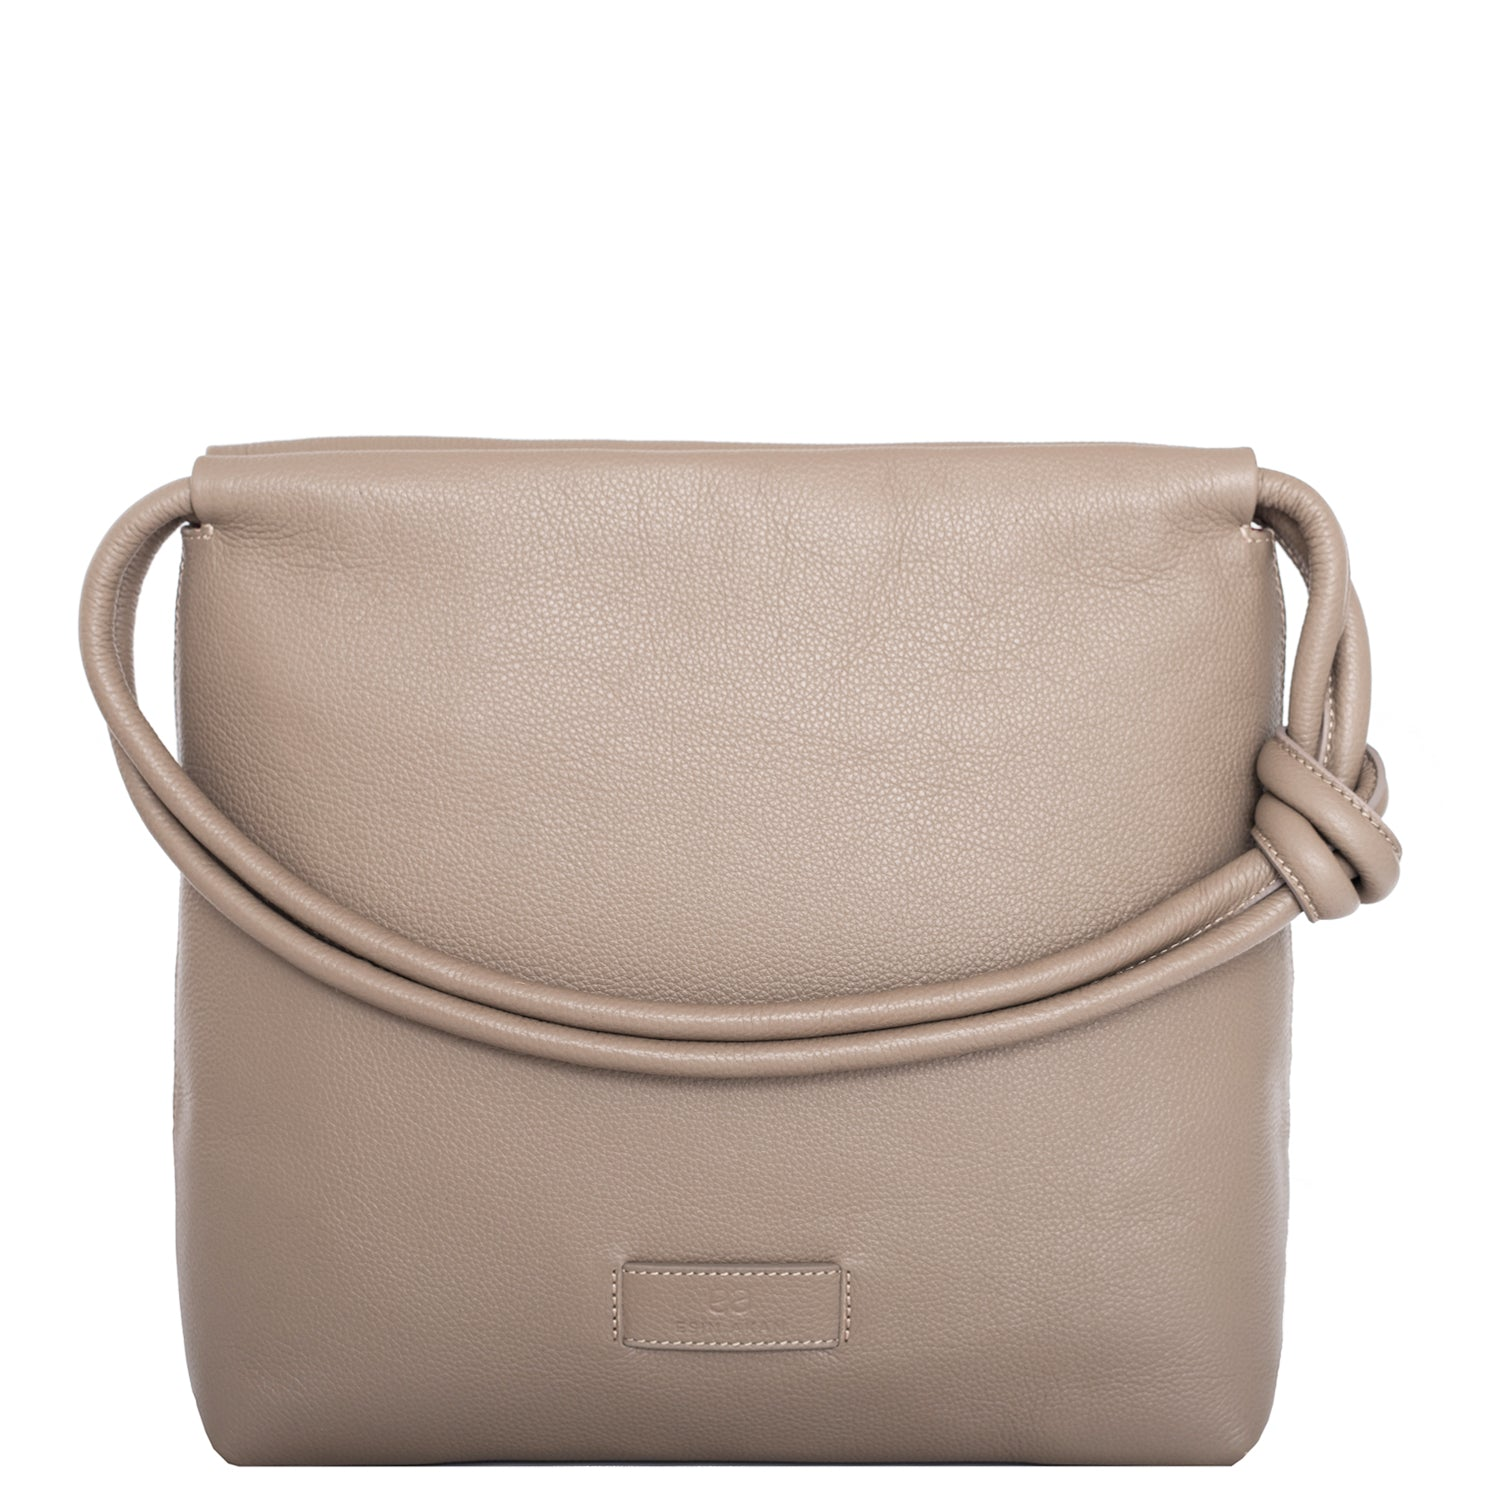 A convertible leather nude shoulder bag for women with a knot detail on the strap that could be used as a clutch bag with its roll down feature, front image.